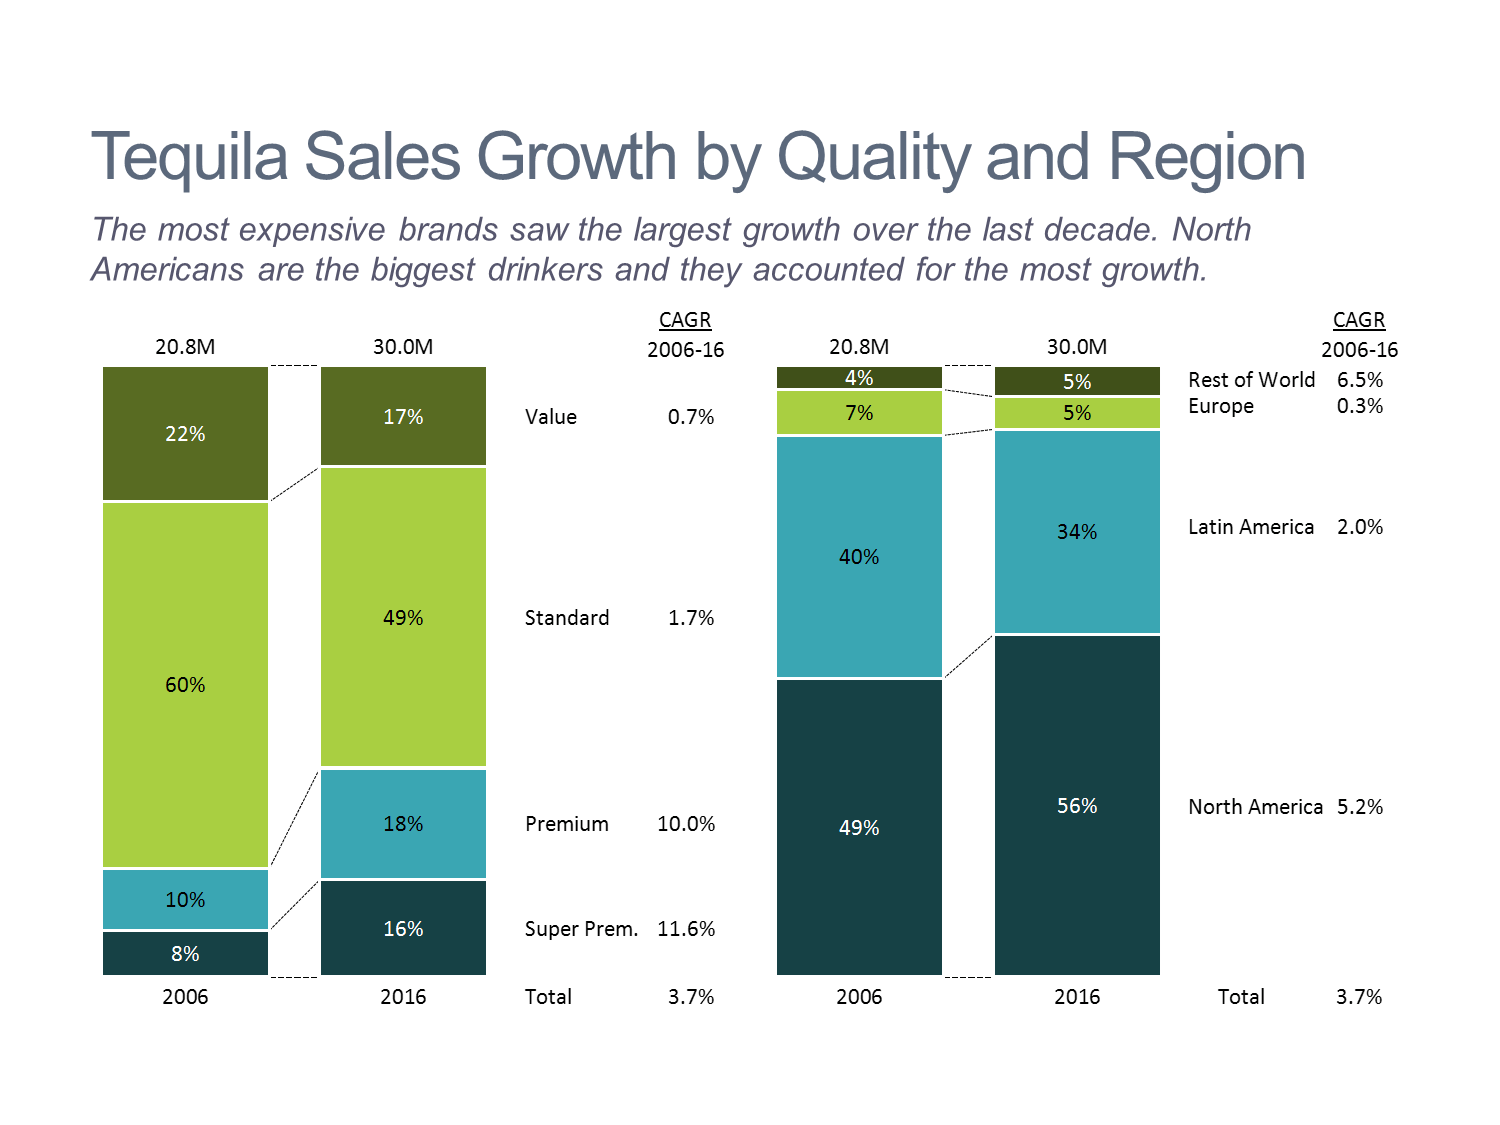 Tequila Sales Growth by Quality and Region Stacked Bar Chart